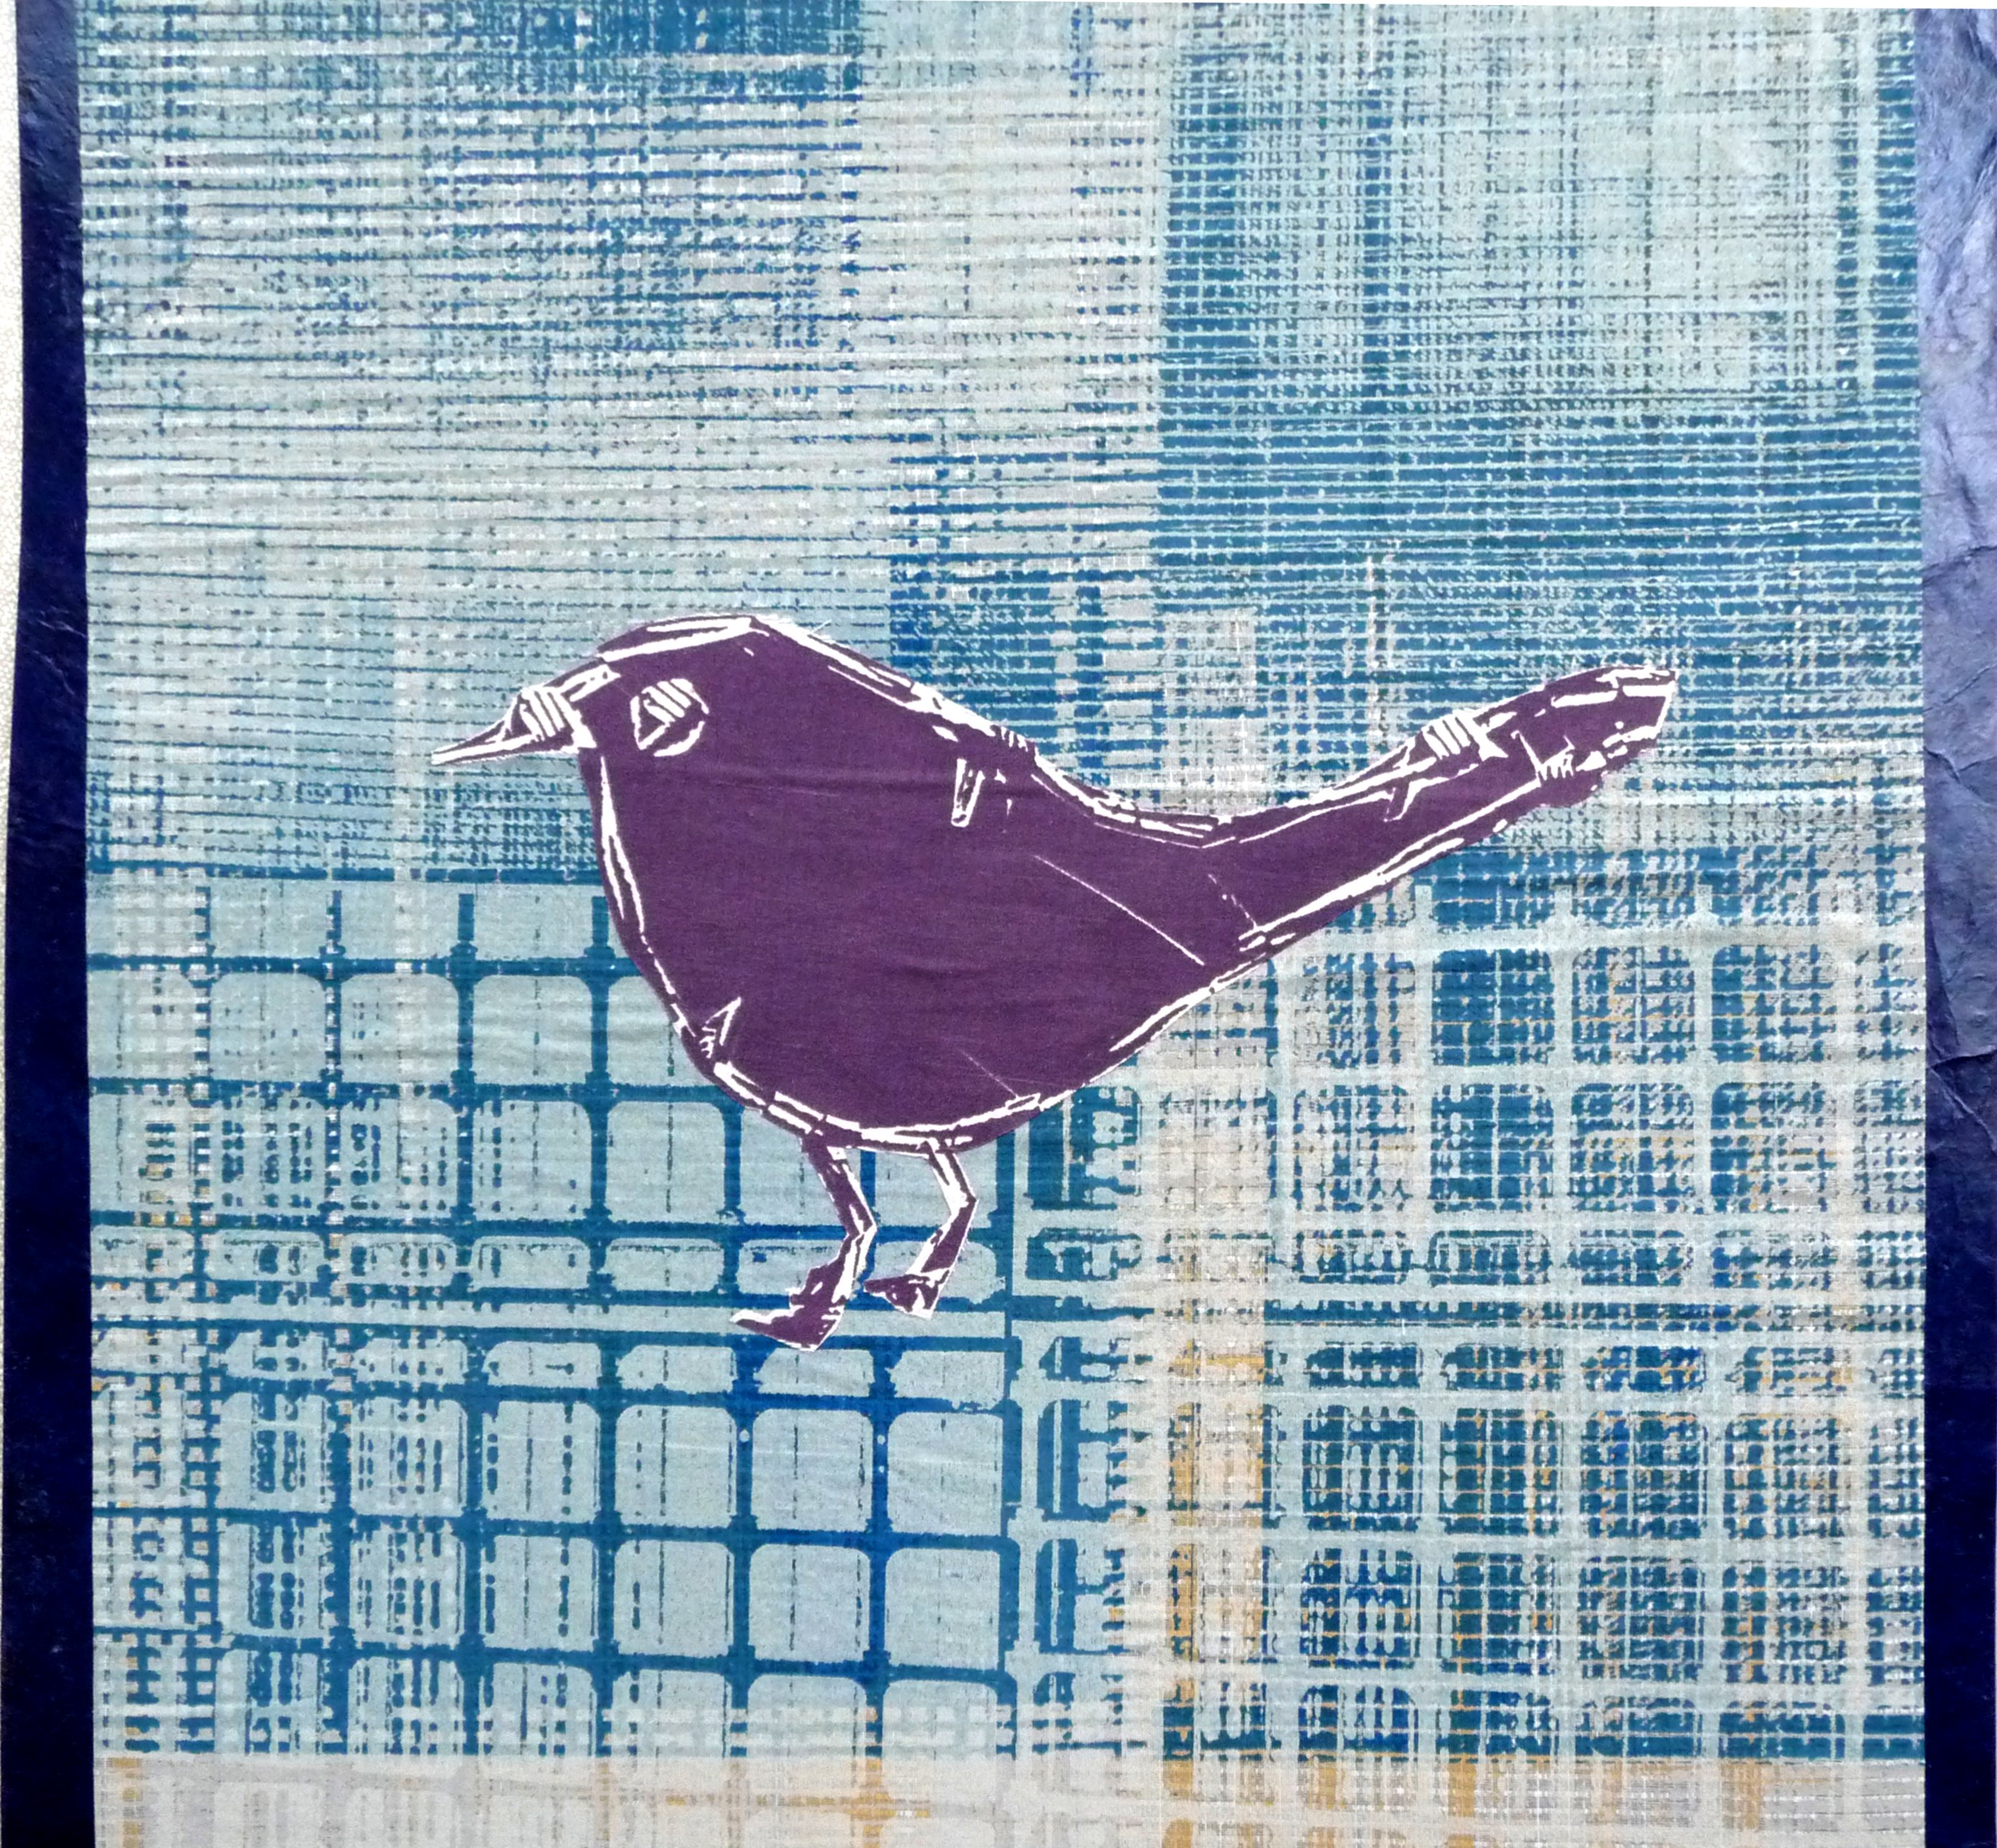 bird image printed on paper by Christine Toh